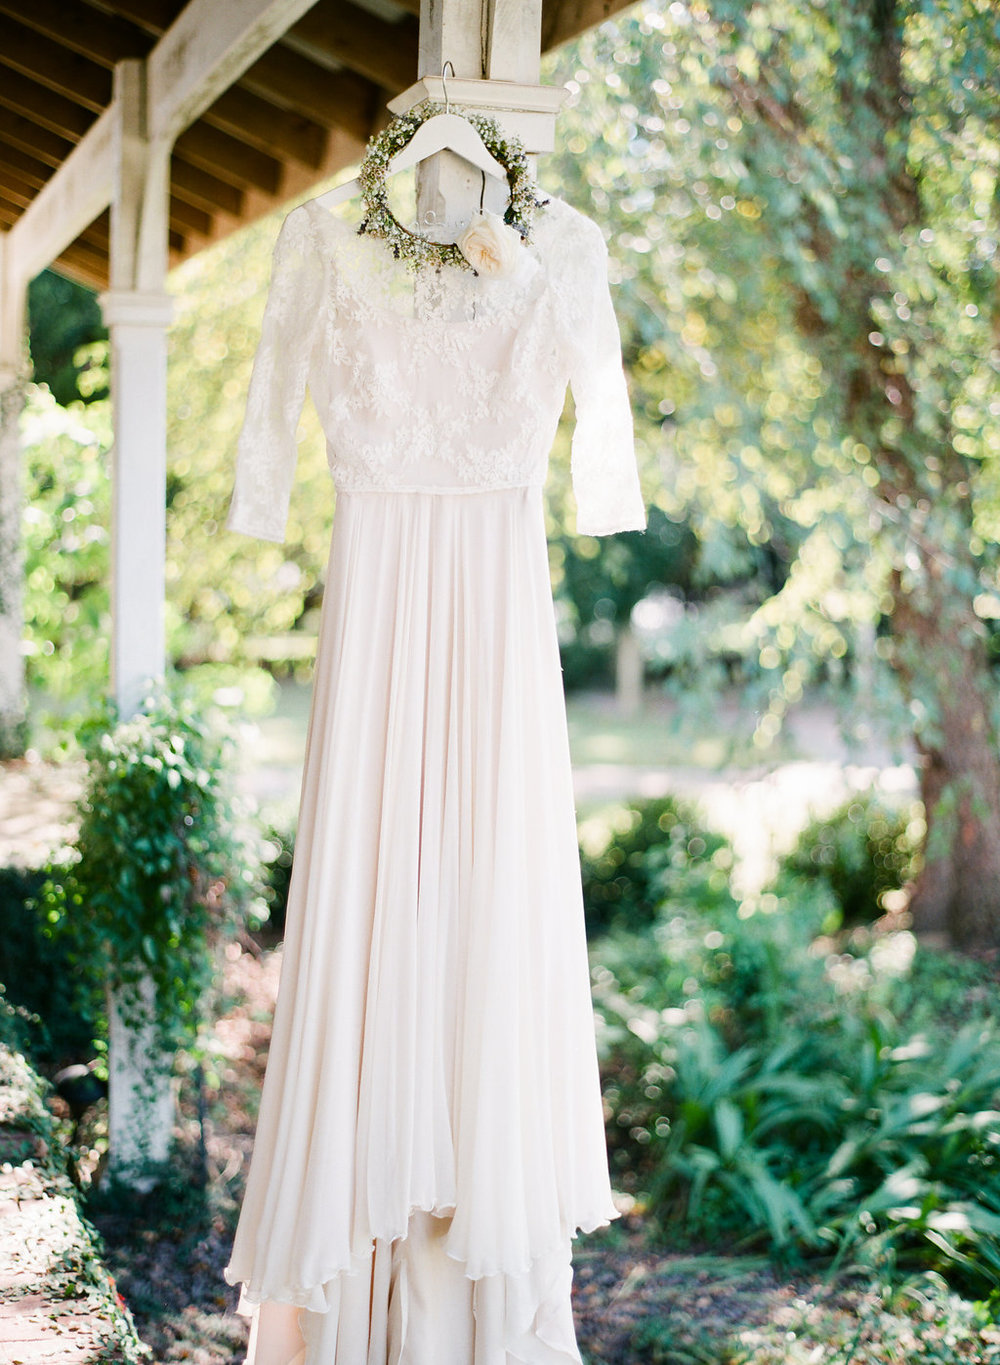 rach-loves-troy-photography-atlanta-wedding-pineola-farms-wedding-cat-wedding-rebecca-shoneveld-vivian-sage-ivory-and-beau-bridal-boutique-savannah-wedding-dresses-savannah-bridal-boutique-savannah-bridal-gowns-savannah-florist-georgia-bridal-4.jpg